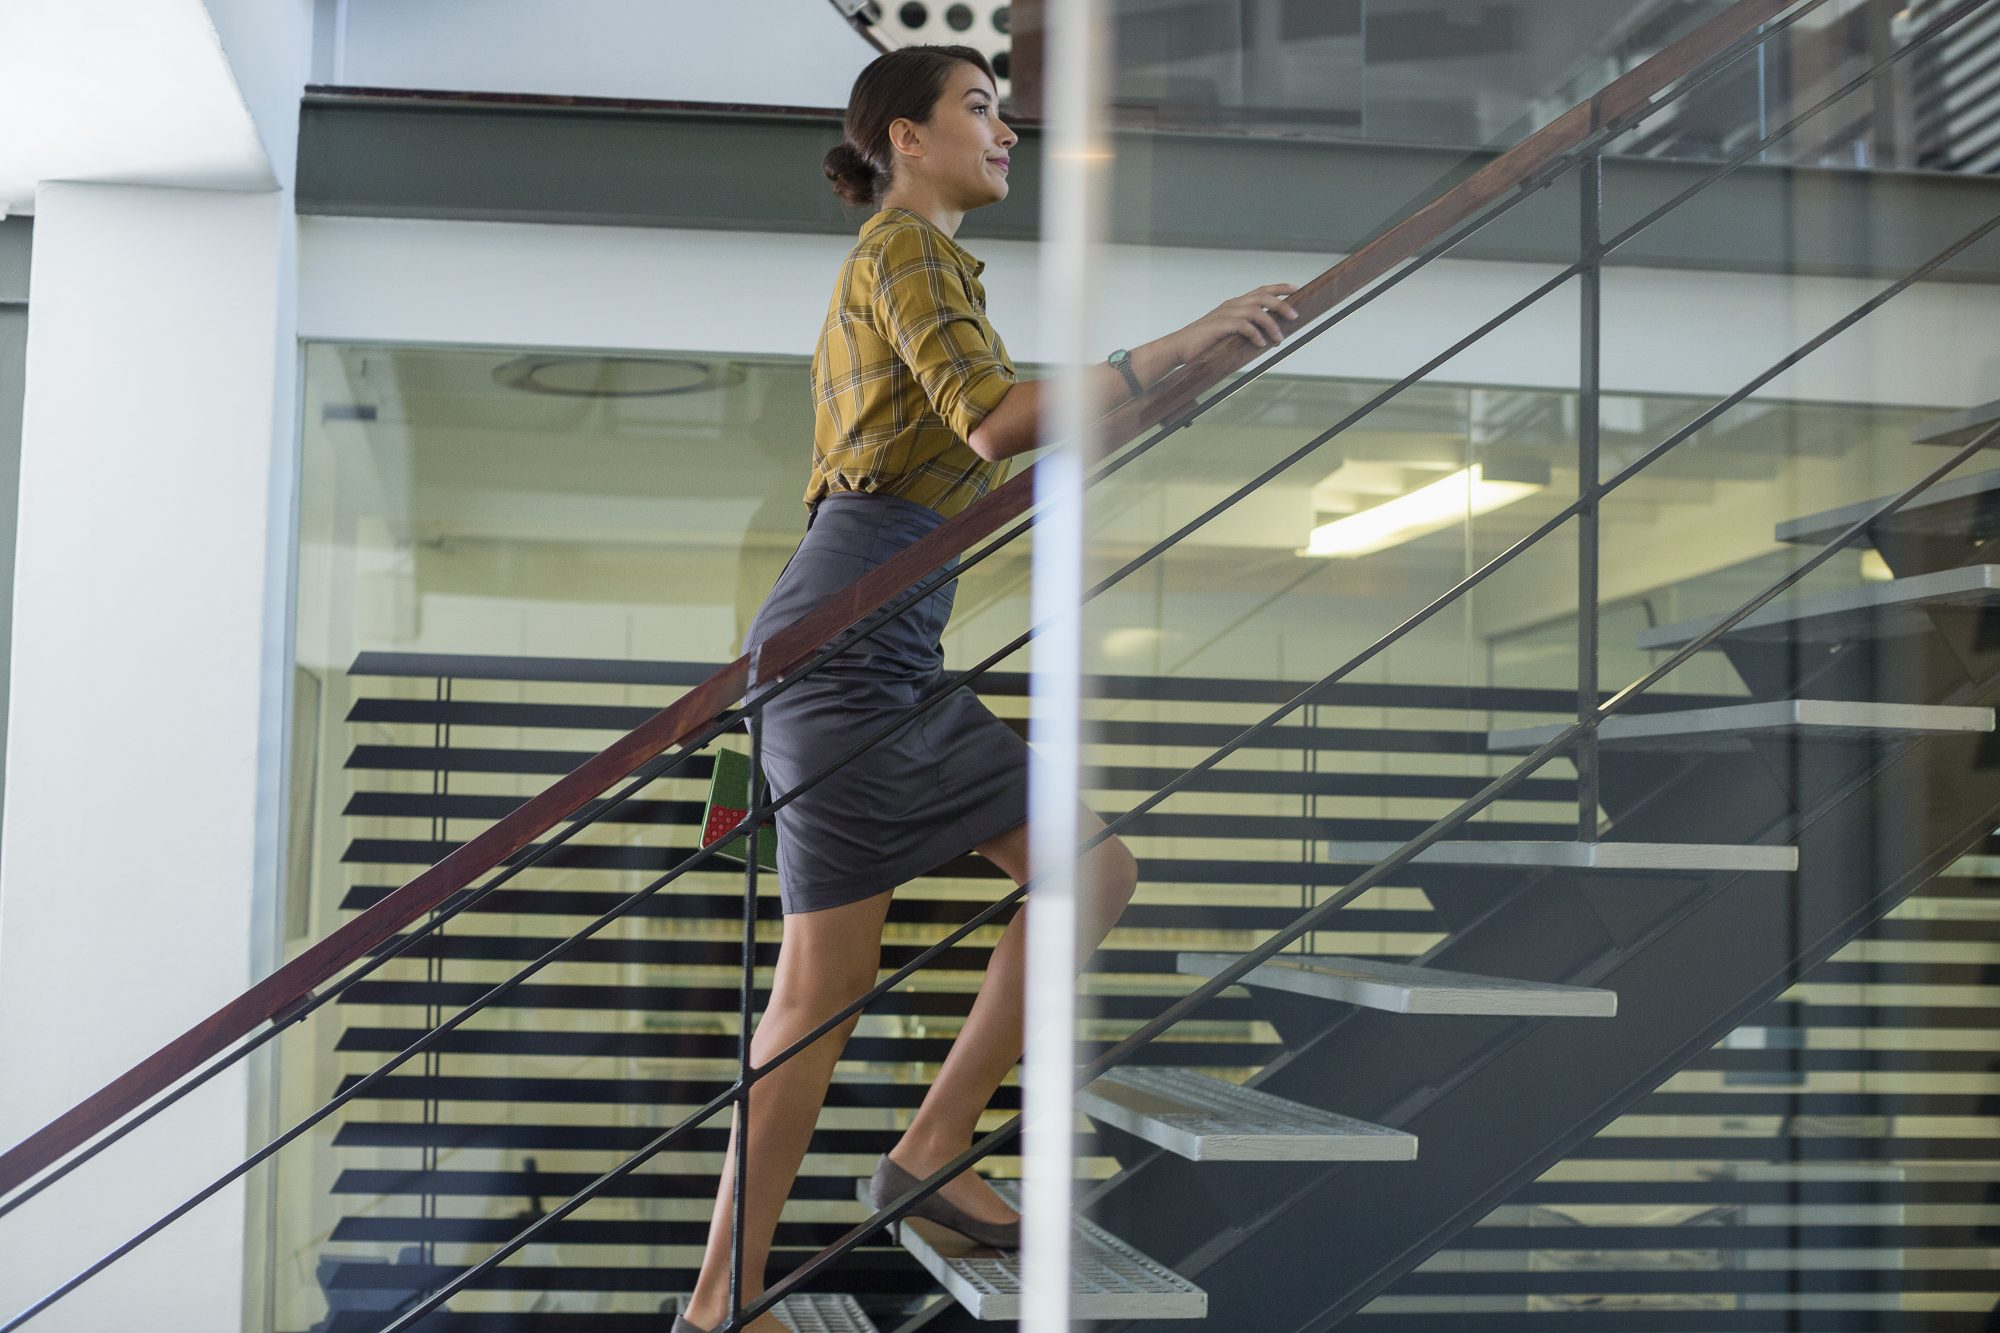 stairs-office-energy-burst-exercise